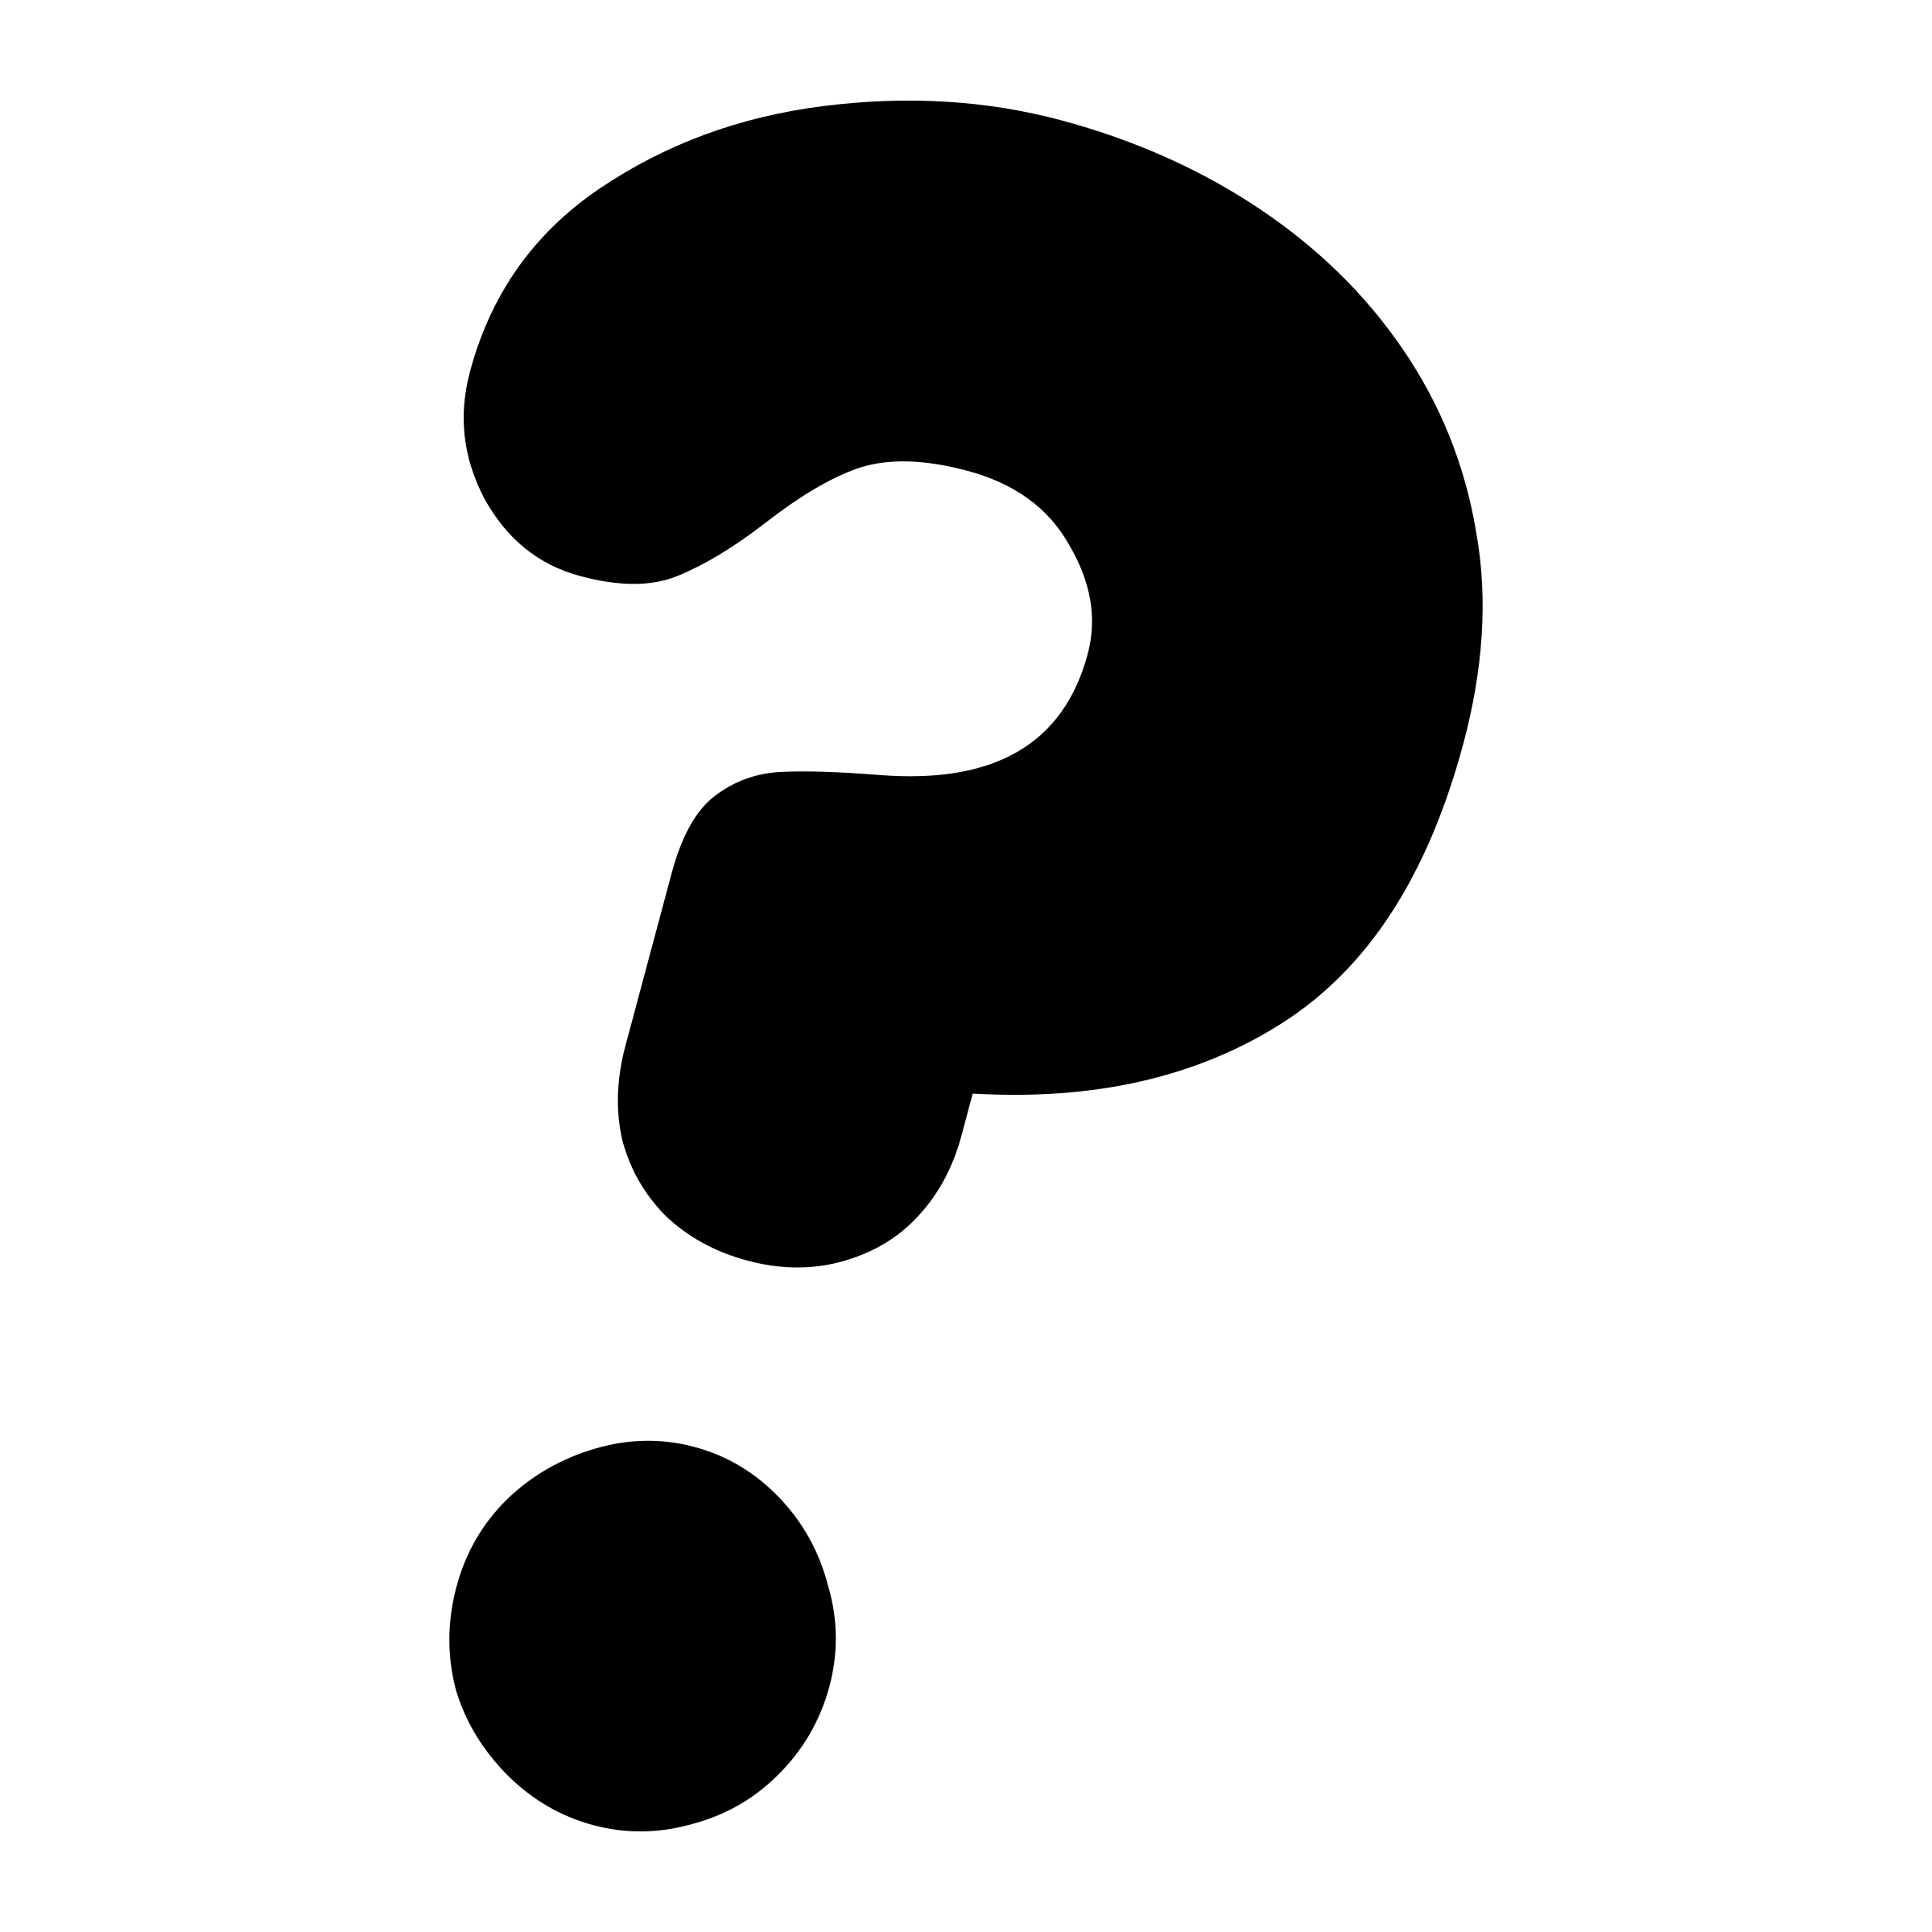 Questions question mark clip art free clipart images 3